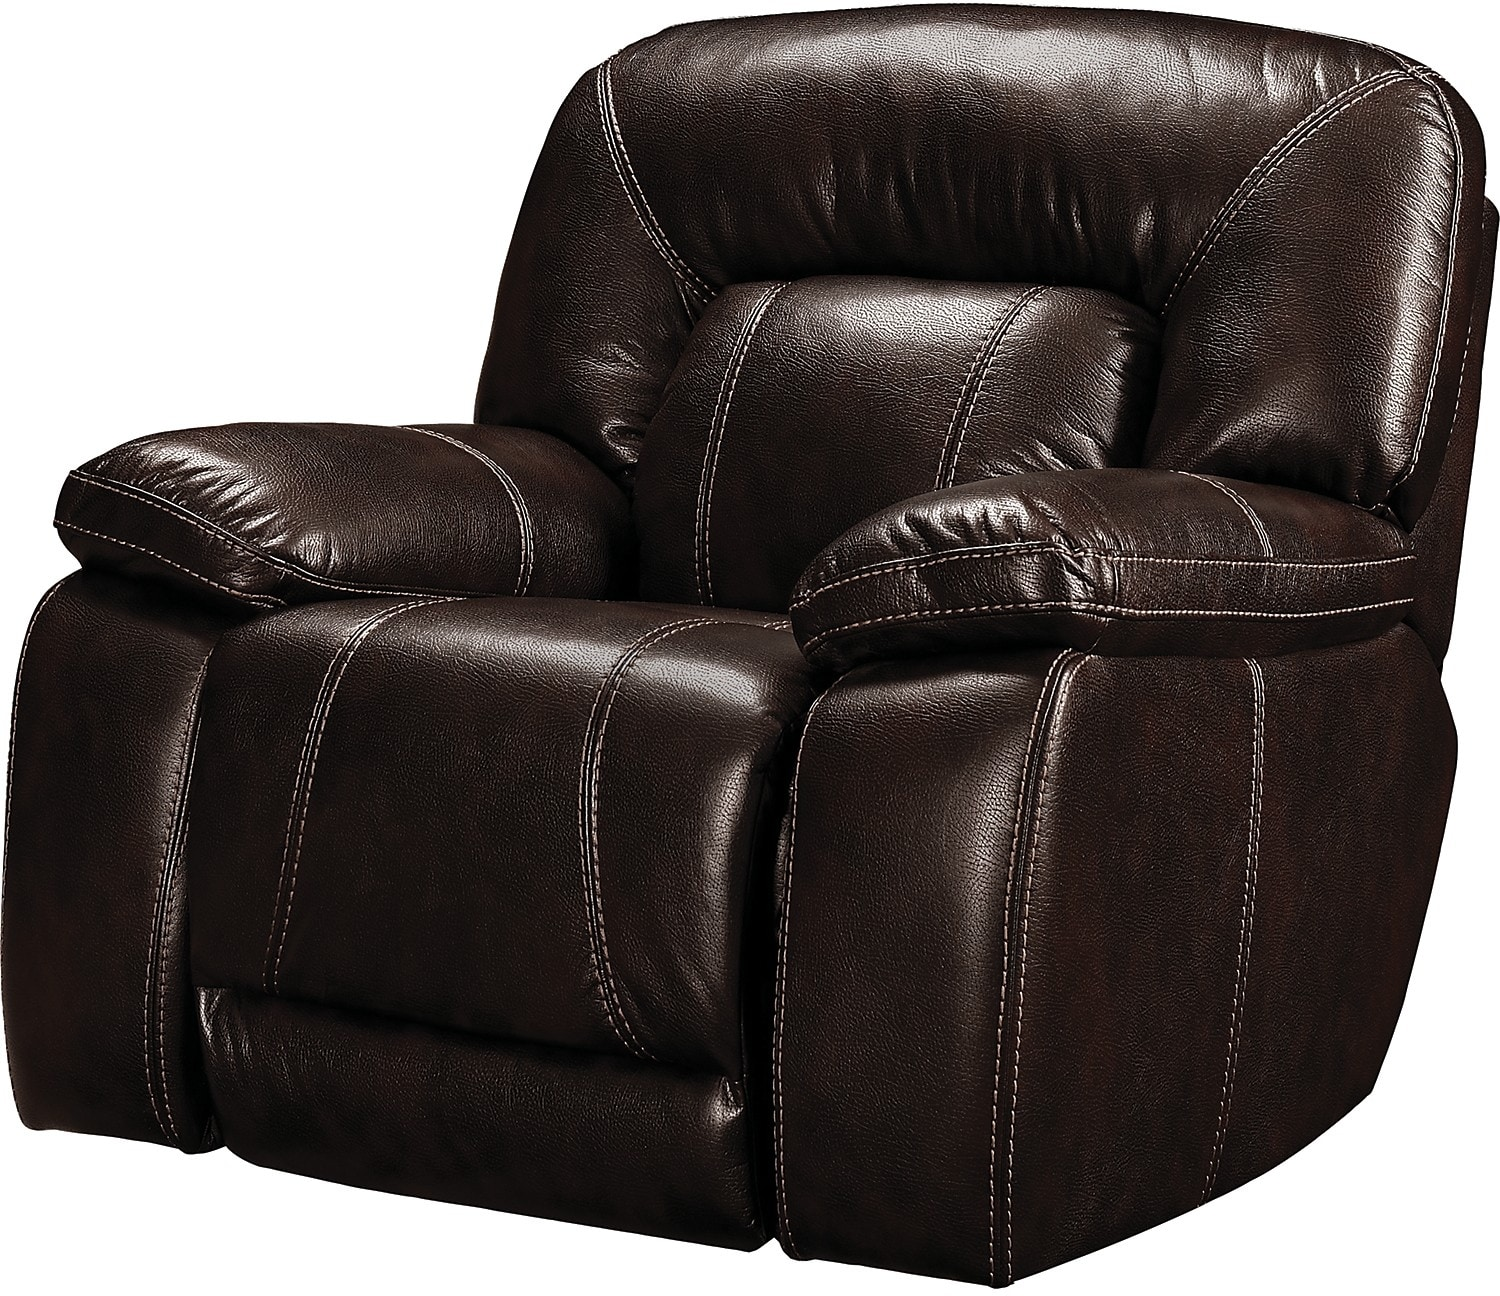 Living Room Furniture - Kimba Leather-Look Fabric Reclining Chair – Brown